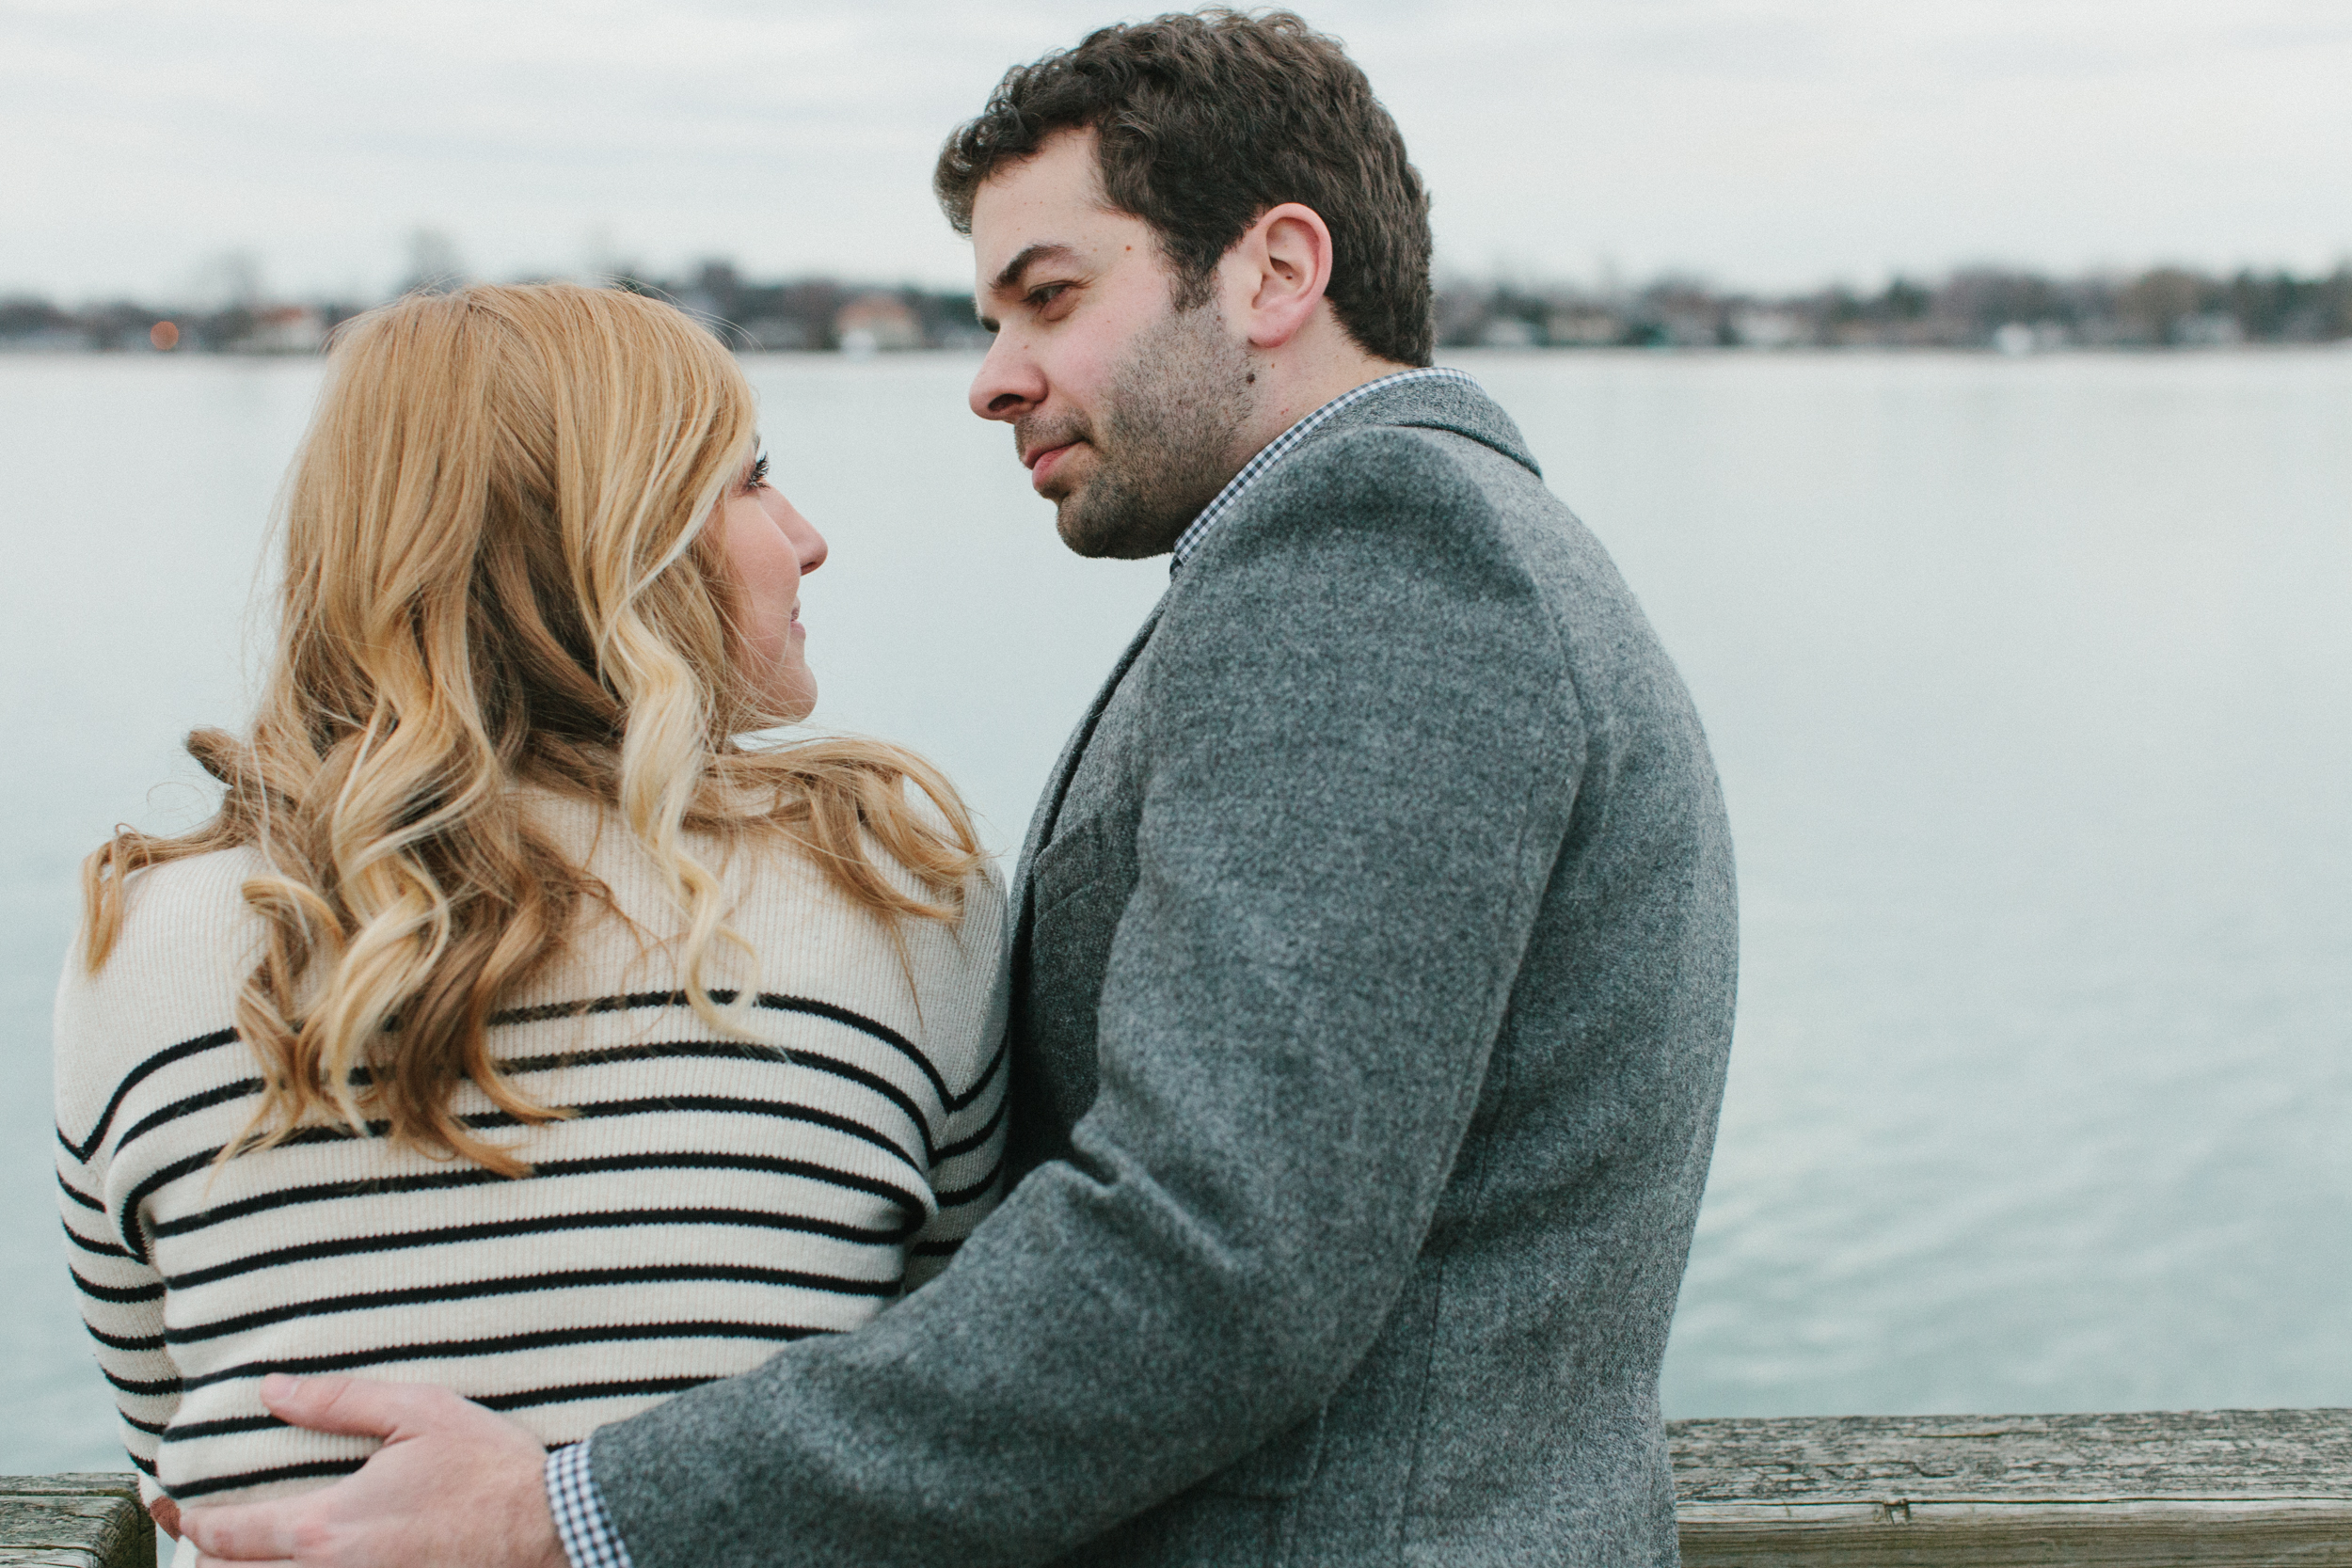 Detroit Michigan Belle Isle Engagement photos Lifestyle Wedding Photographer Mae Stier Candid Photography-030.jpg